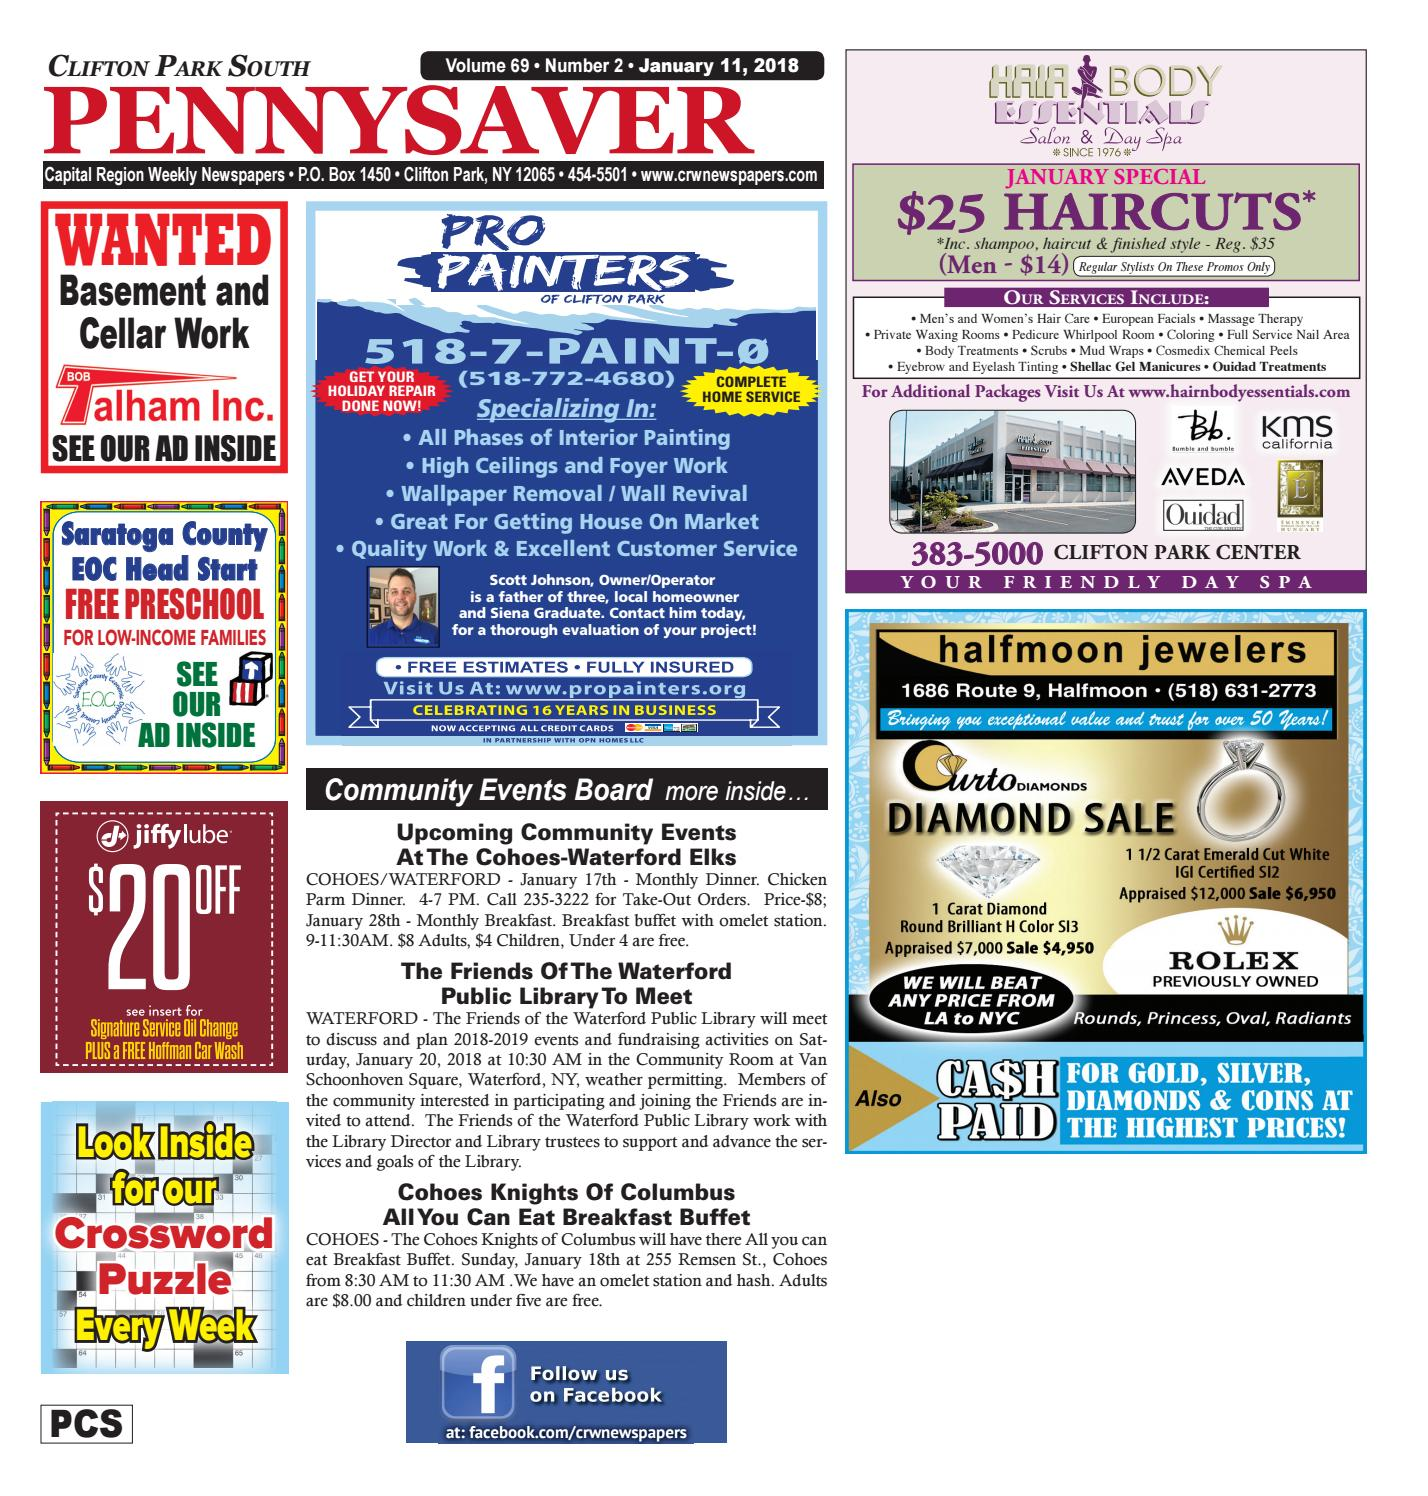 Clifton Park South Pennysaver by Capital Region Weekly